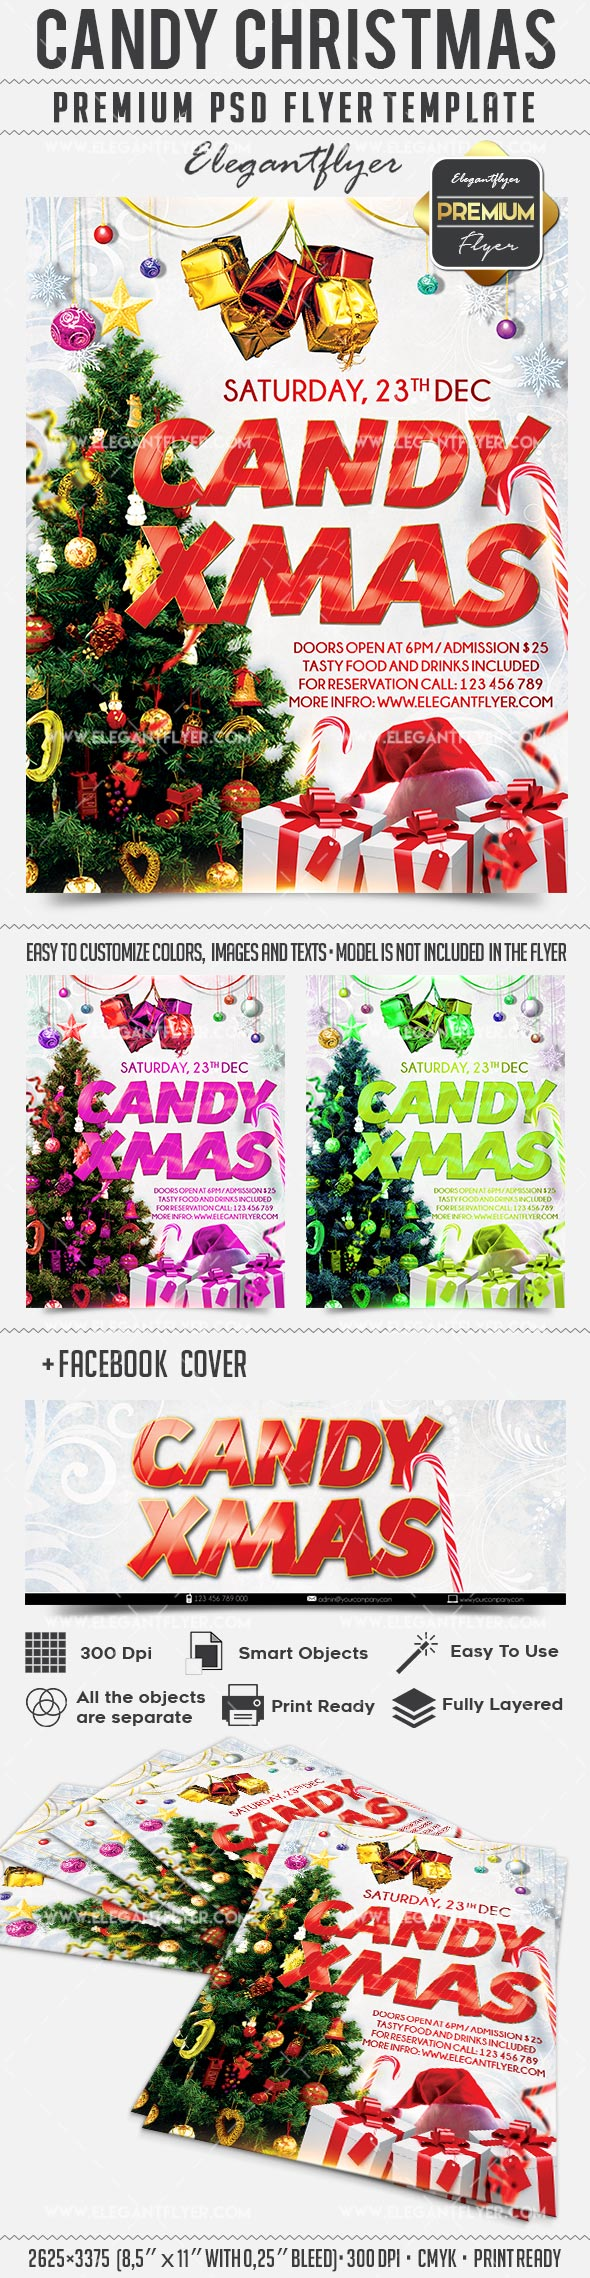 Candy Christmas Flyer PSD Templates